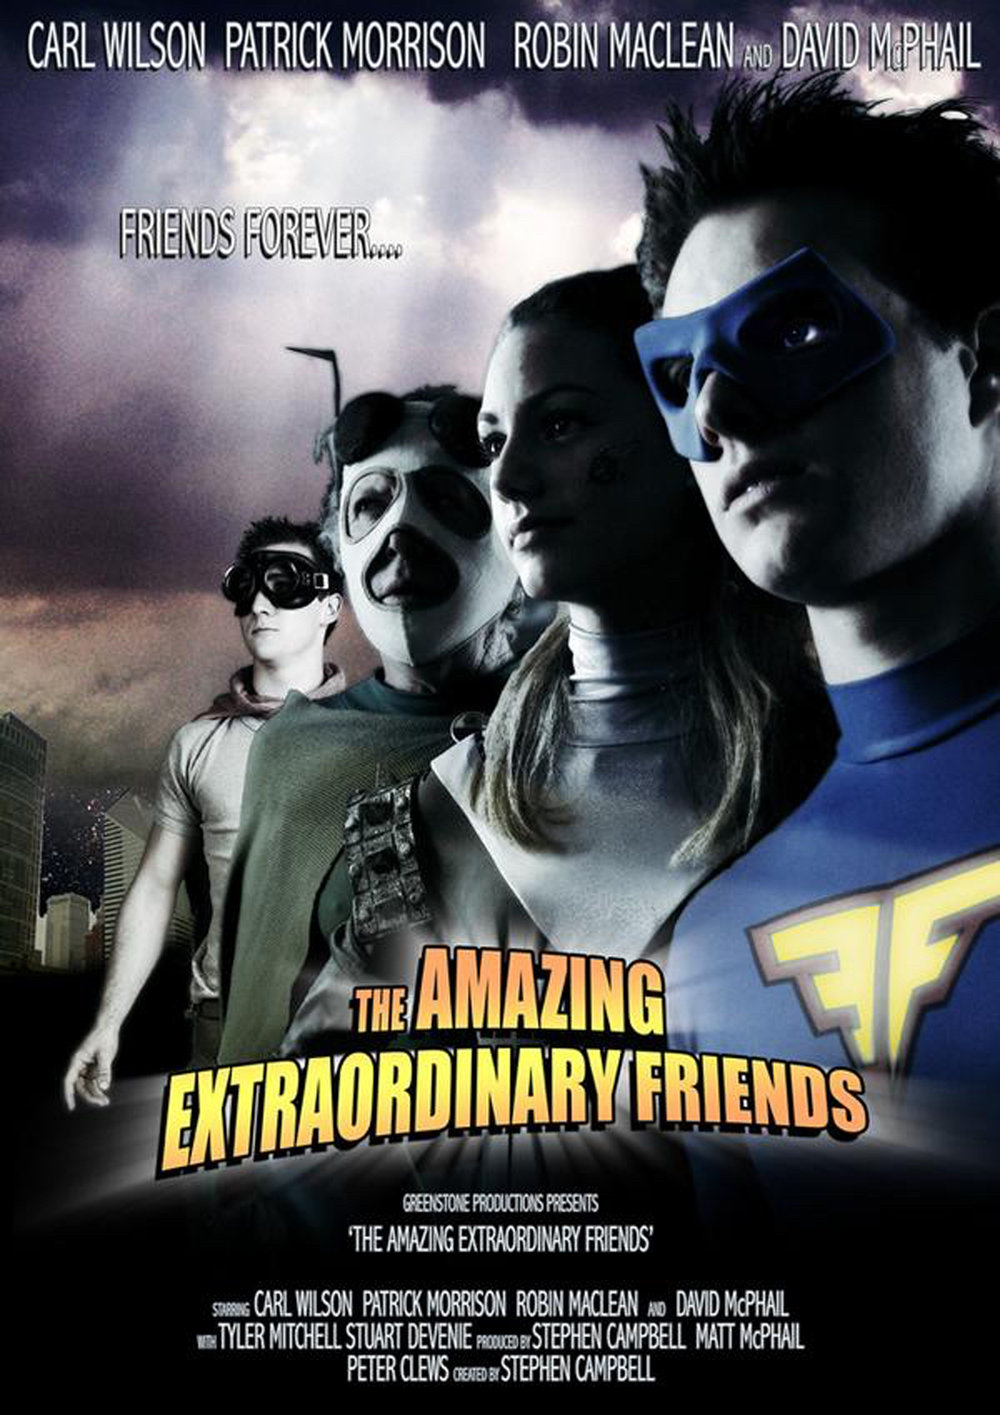 The Amazing Extraordinary Friends: Seasons One, two and Three. (TVNZ)   After discovering an ancient alien artefact, 16 year-old Ben Wilson is suddenly transformed into a legendary superhero. Ben must learn to control his new found super powers if he is to save his friends (not to mention the world) from a collective of sinister super villains known as Nemesis.   Finalist - 2008 Roma Fiction Festival (Italy) Finalist - the Seoul Drama Festival 2008 (Korea). Finalist - 2008 Qantas Film and Television Awards (New Zealand) Finalist - Best Children's/Youth Programme at the Aotearoa Film and Television Awards 2011.    Winner - special prize at the Seoul International Drama Festival 2011 (Korea)